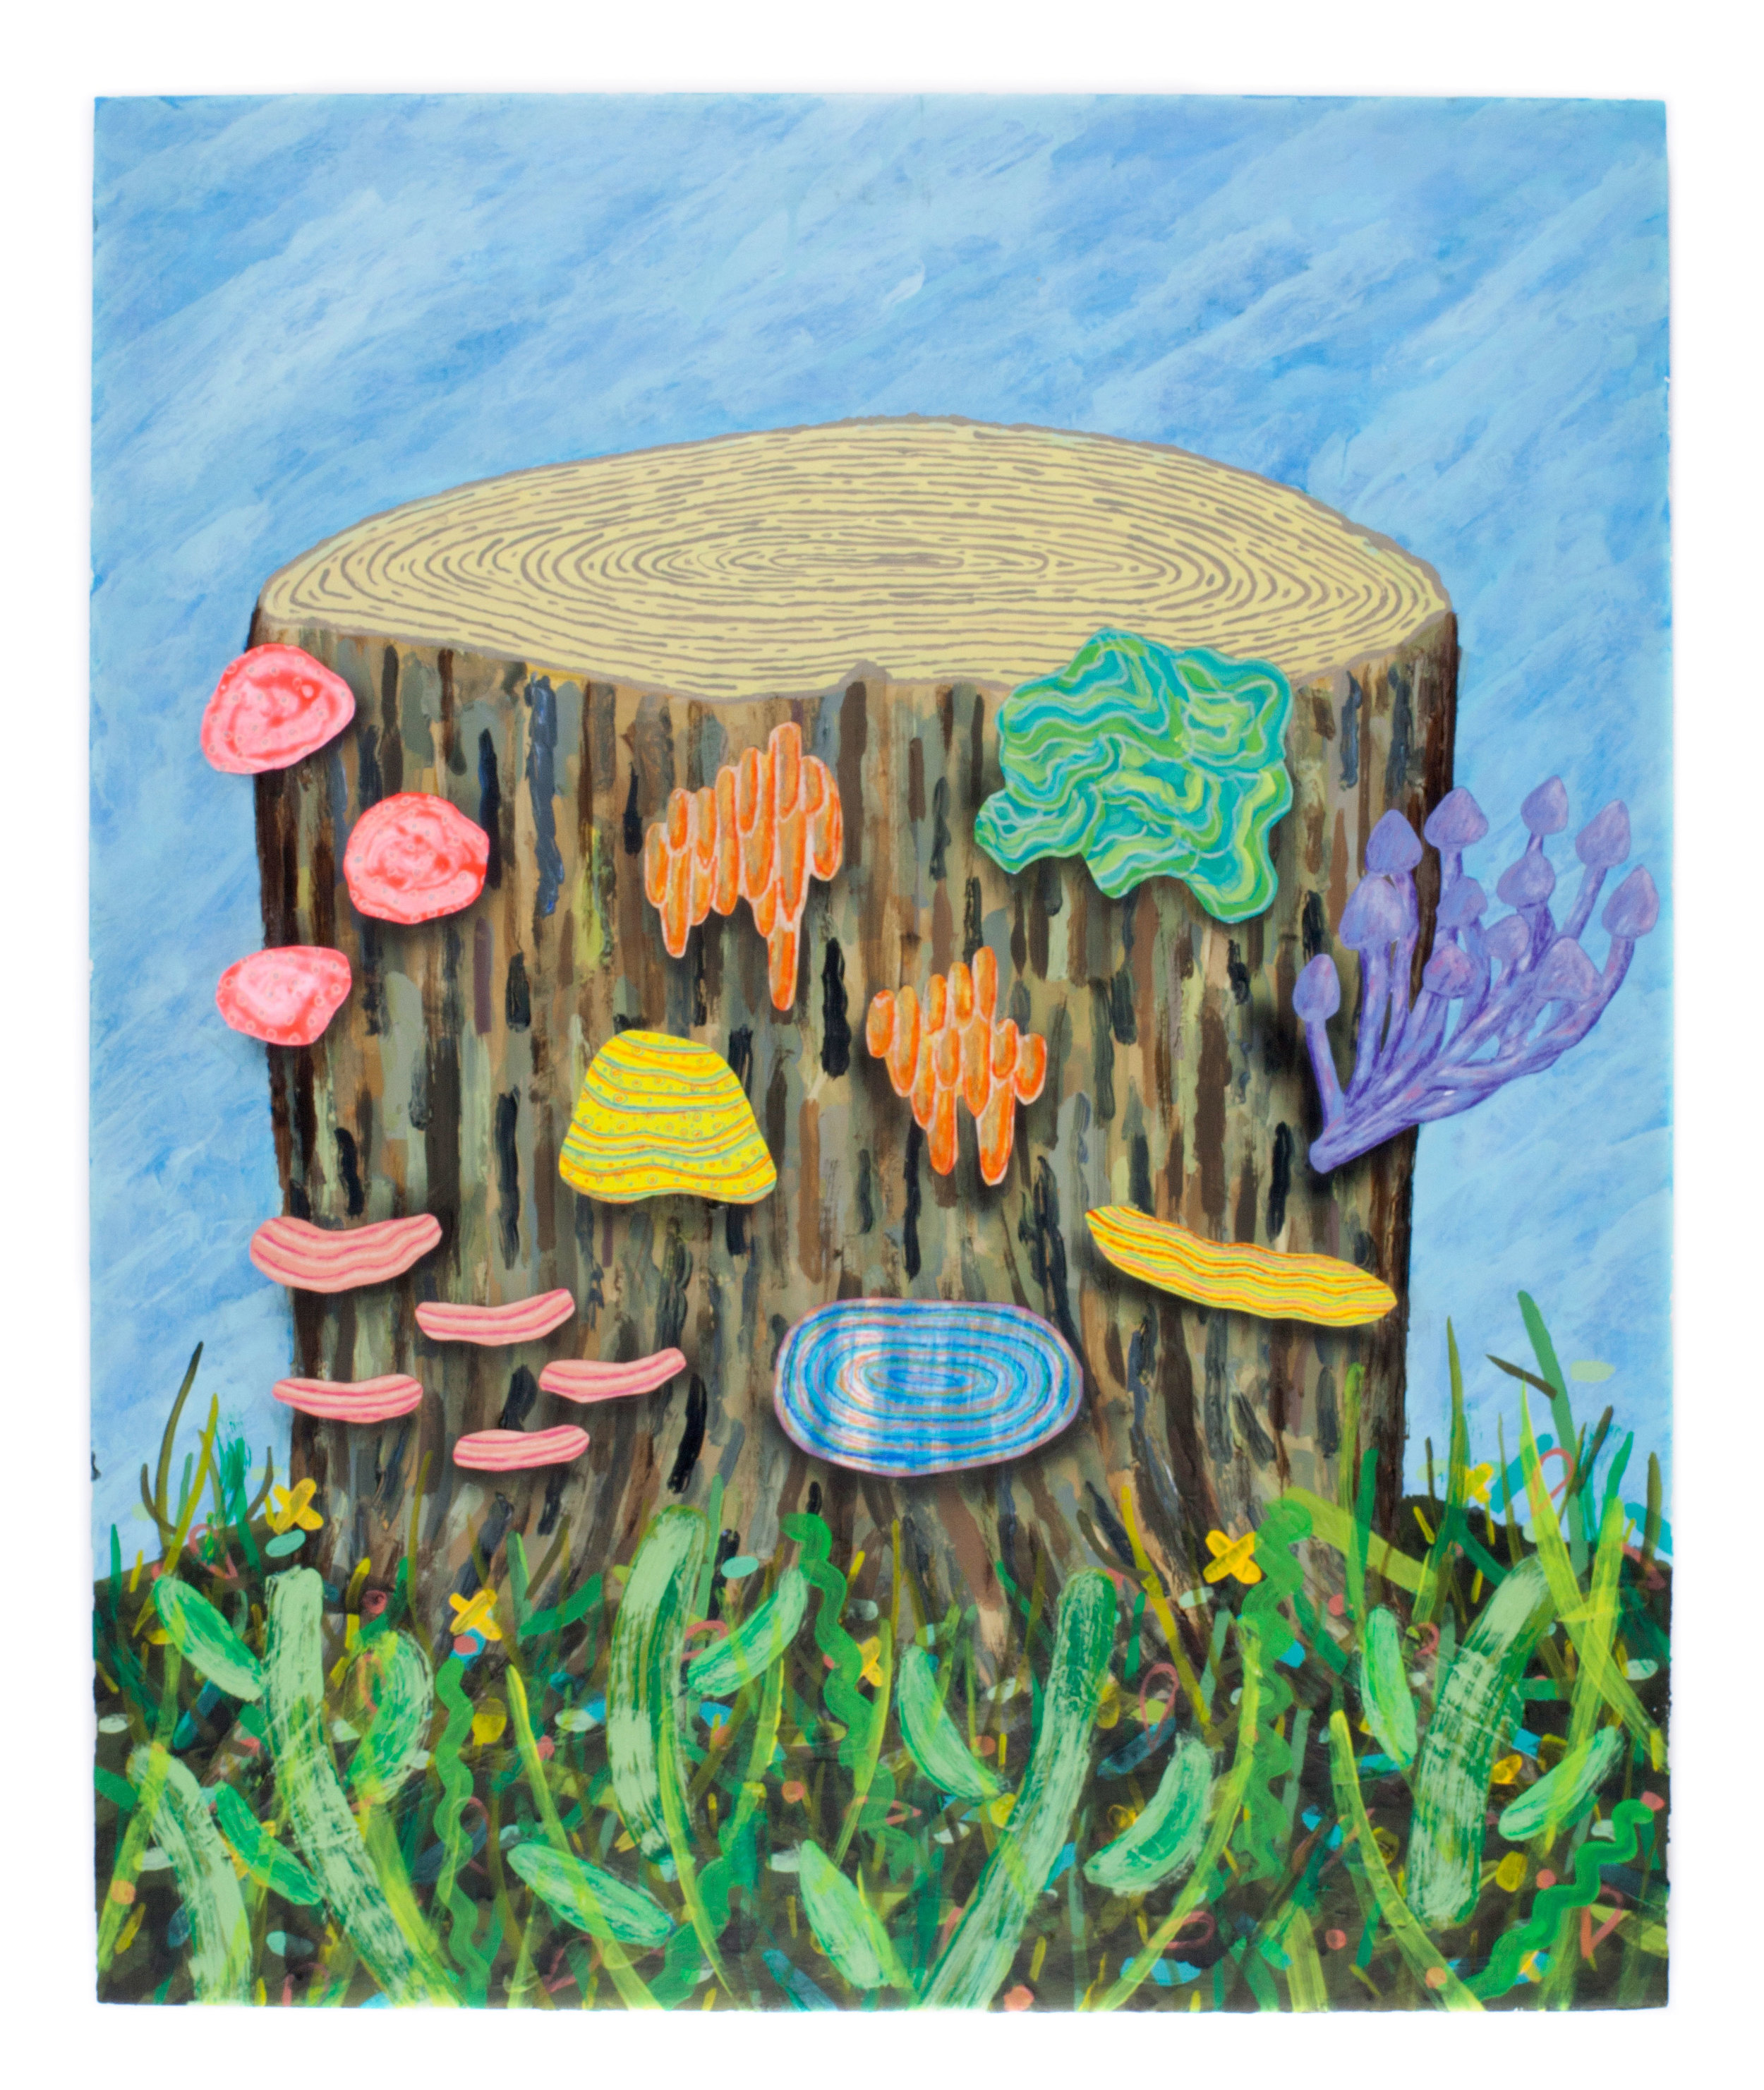 "Tree stump- 18x20"" Acylic,colored pencil, & paper on Panel"